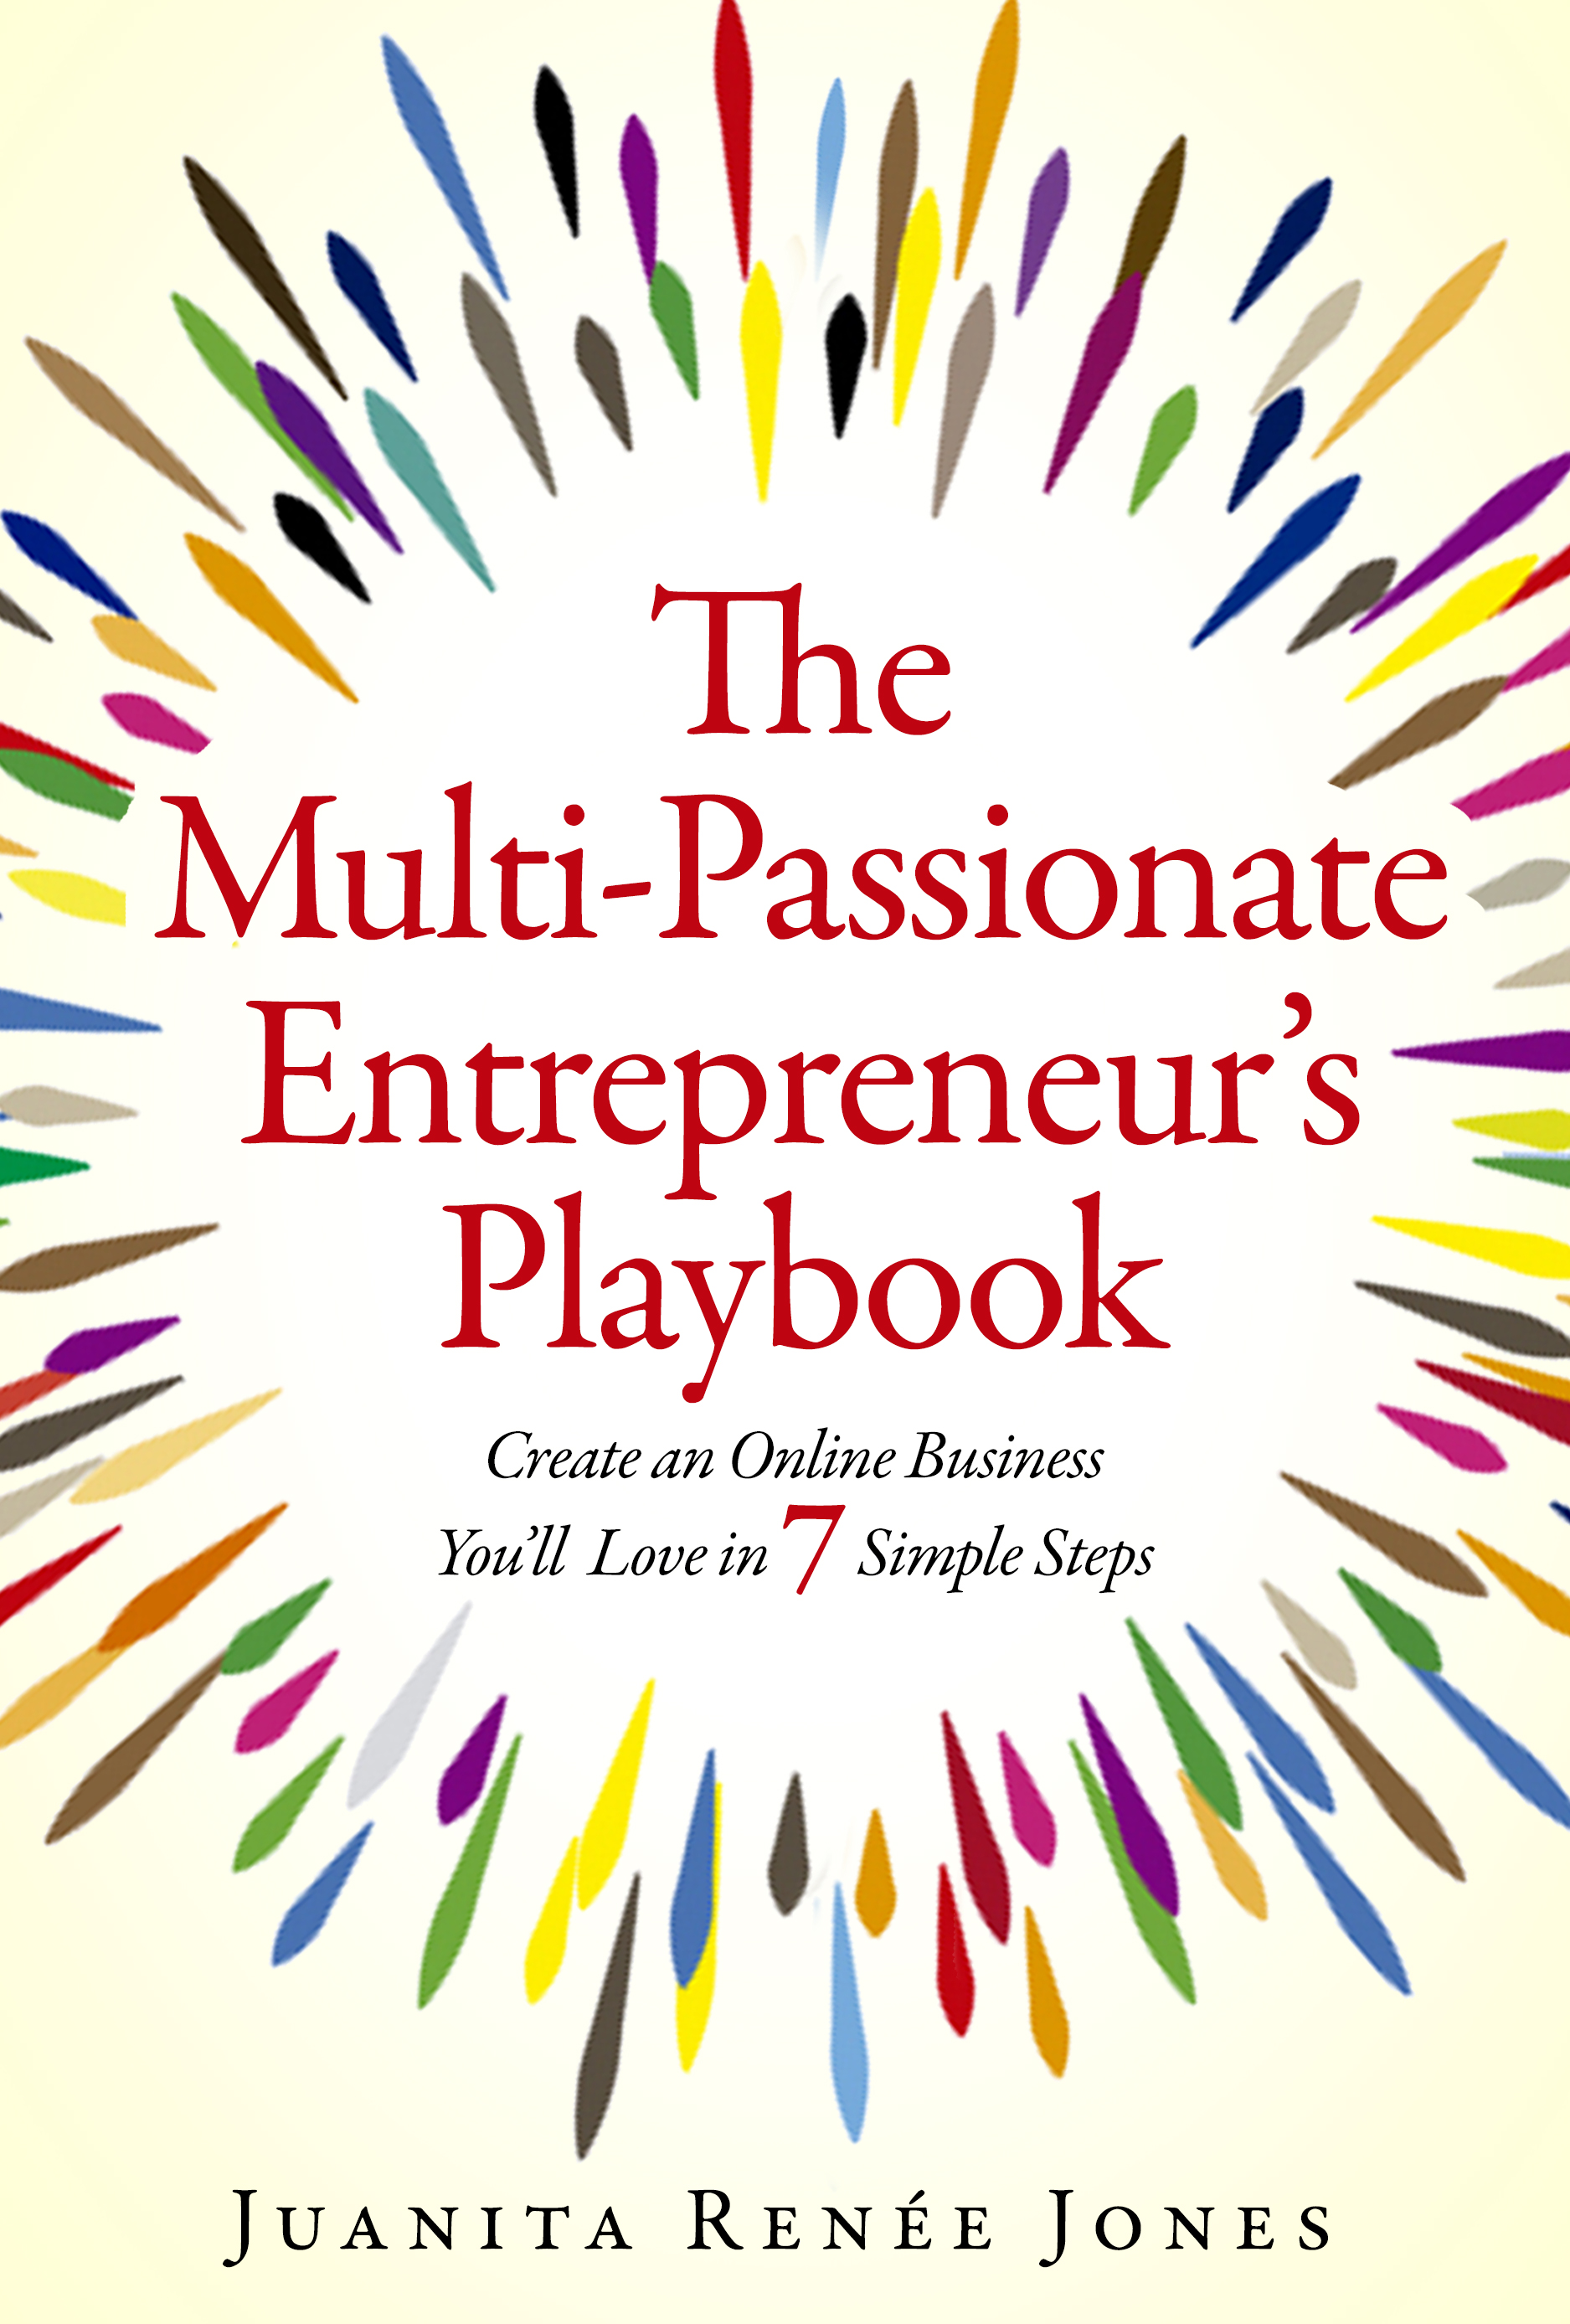 The Multi-Passionate Entrepreneur